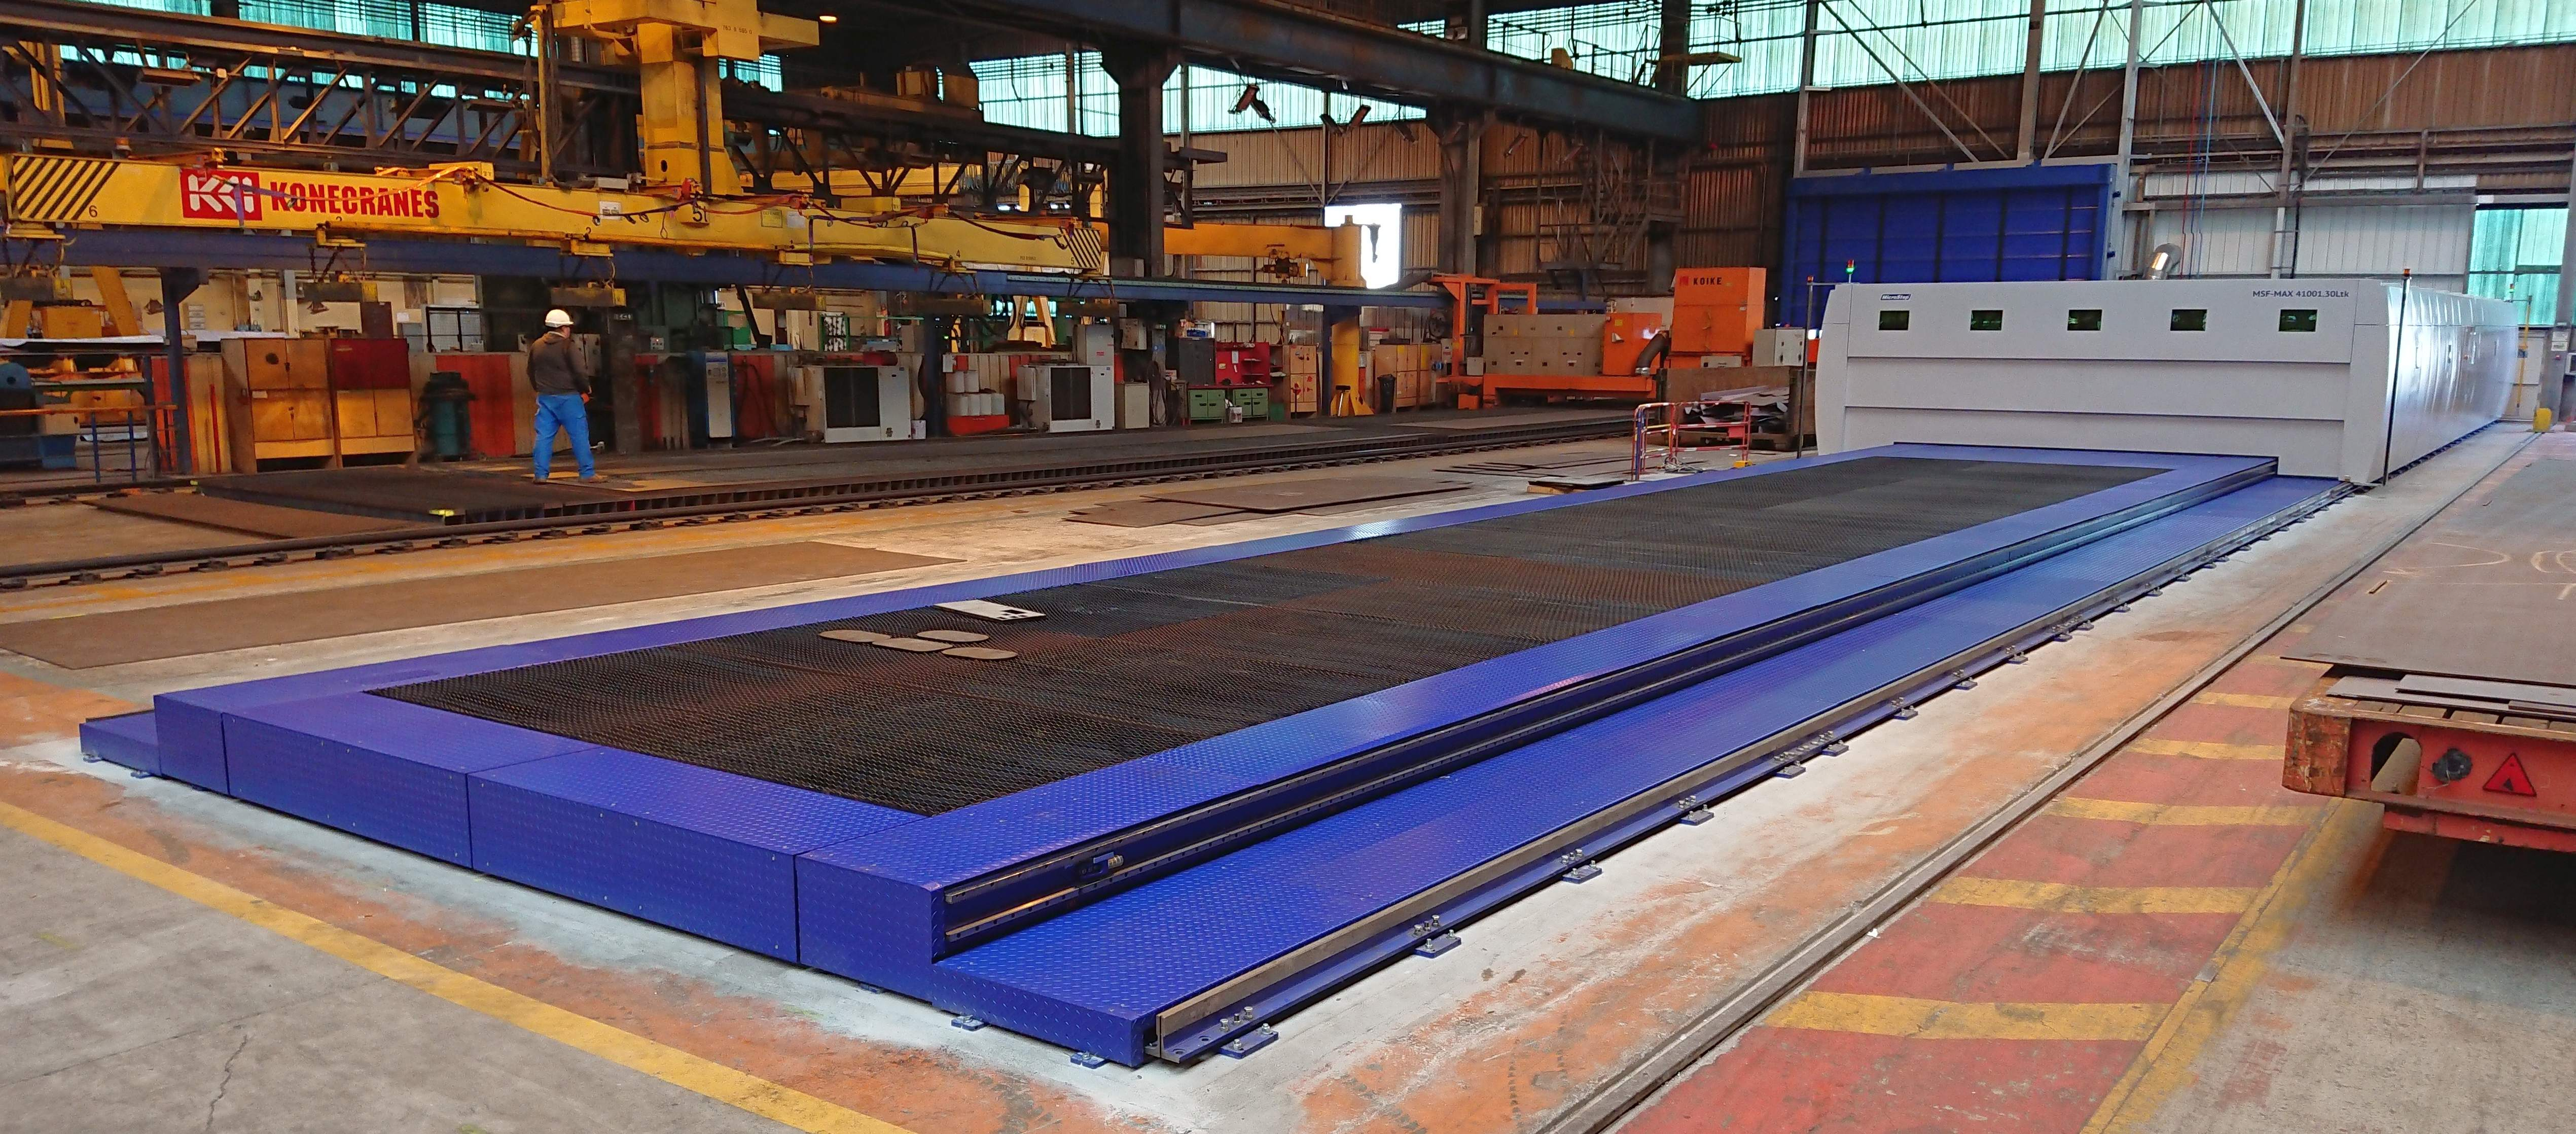 Laser Cutting Machines for Large Scale Applications / News